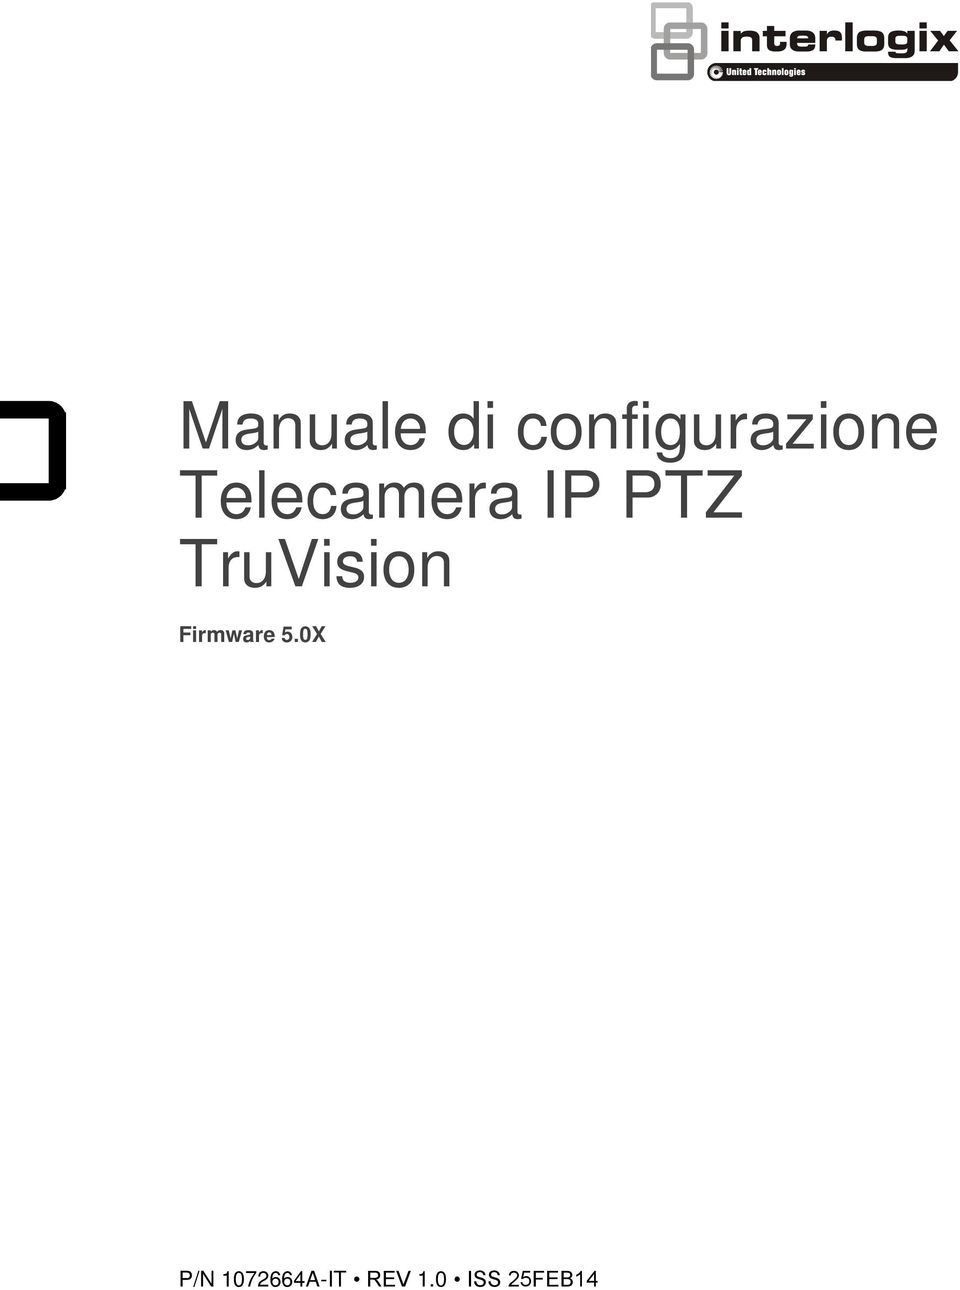 TruVision Firmware 5.